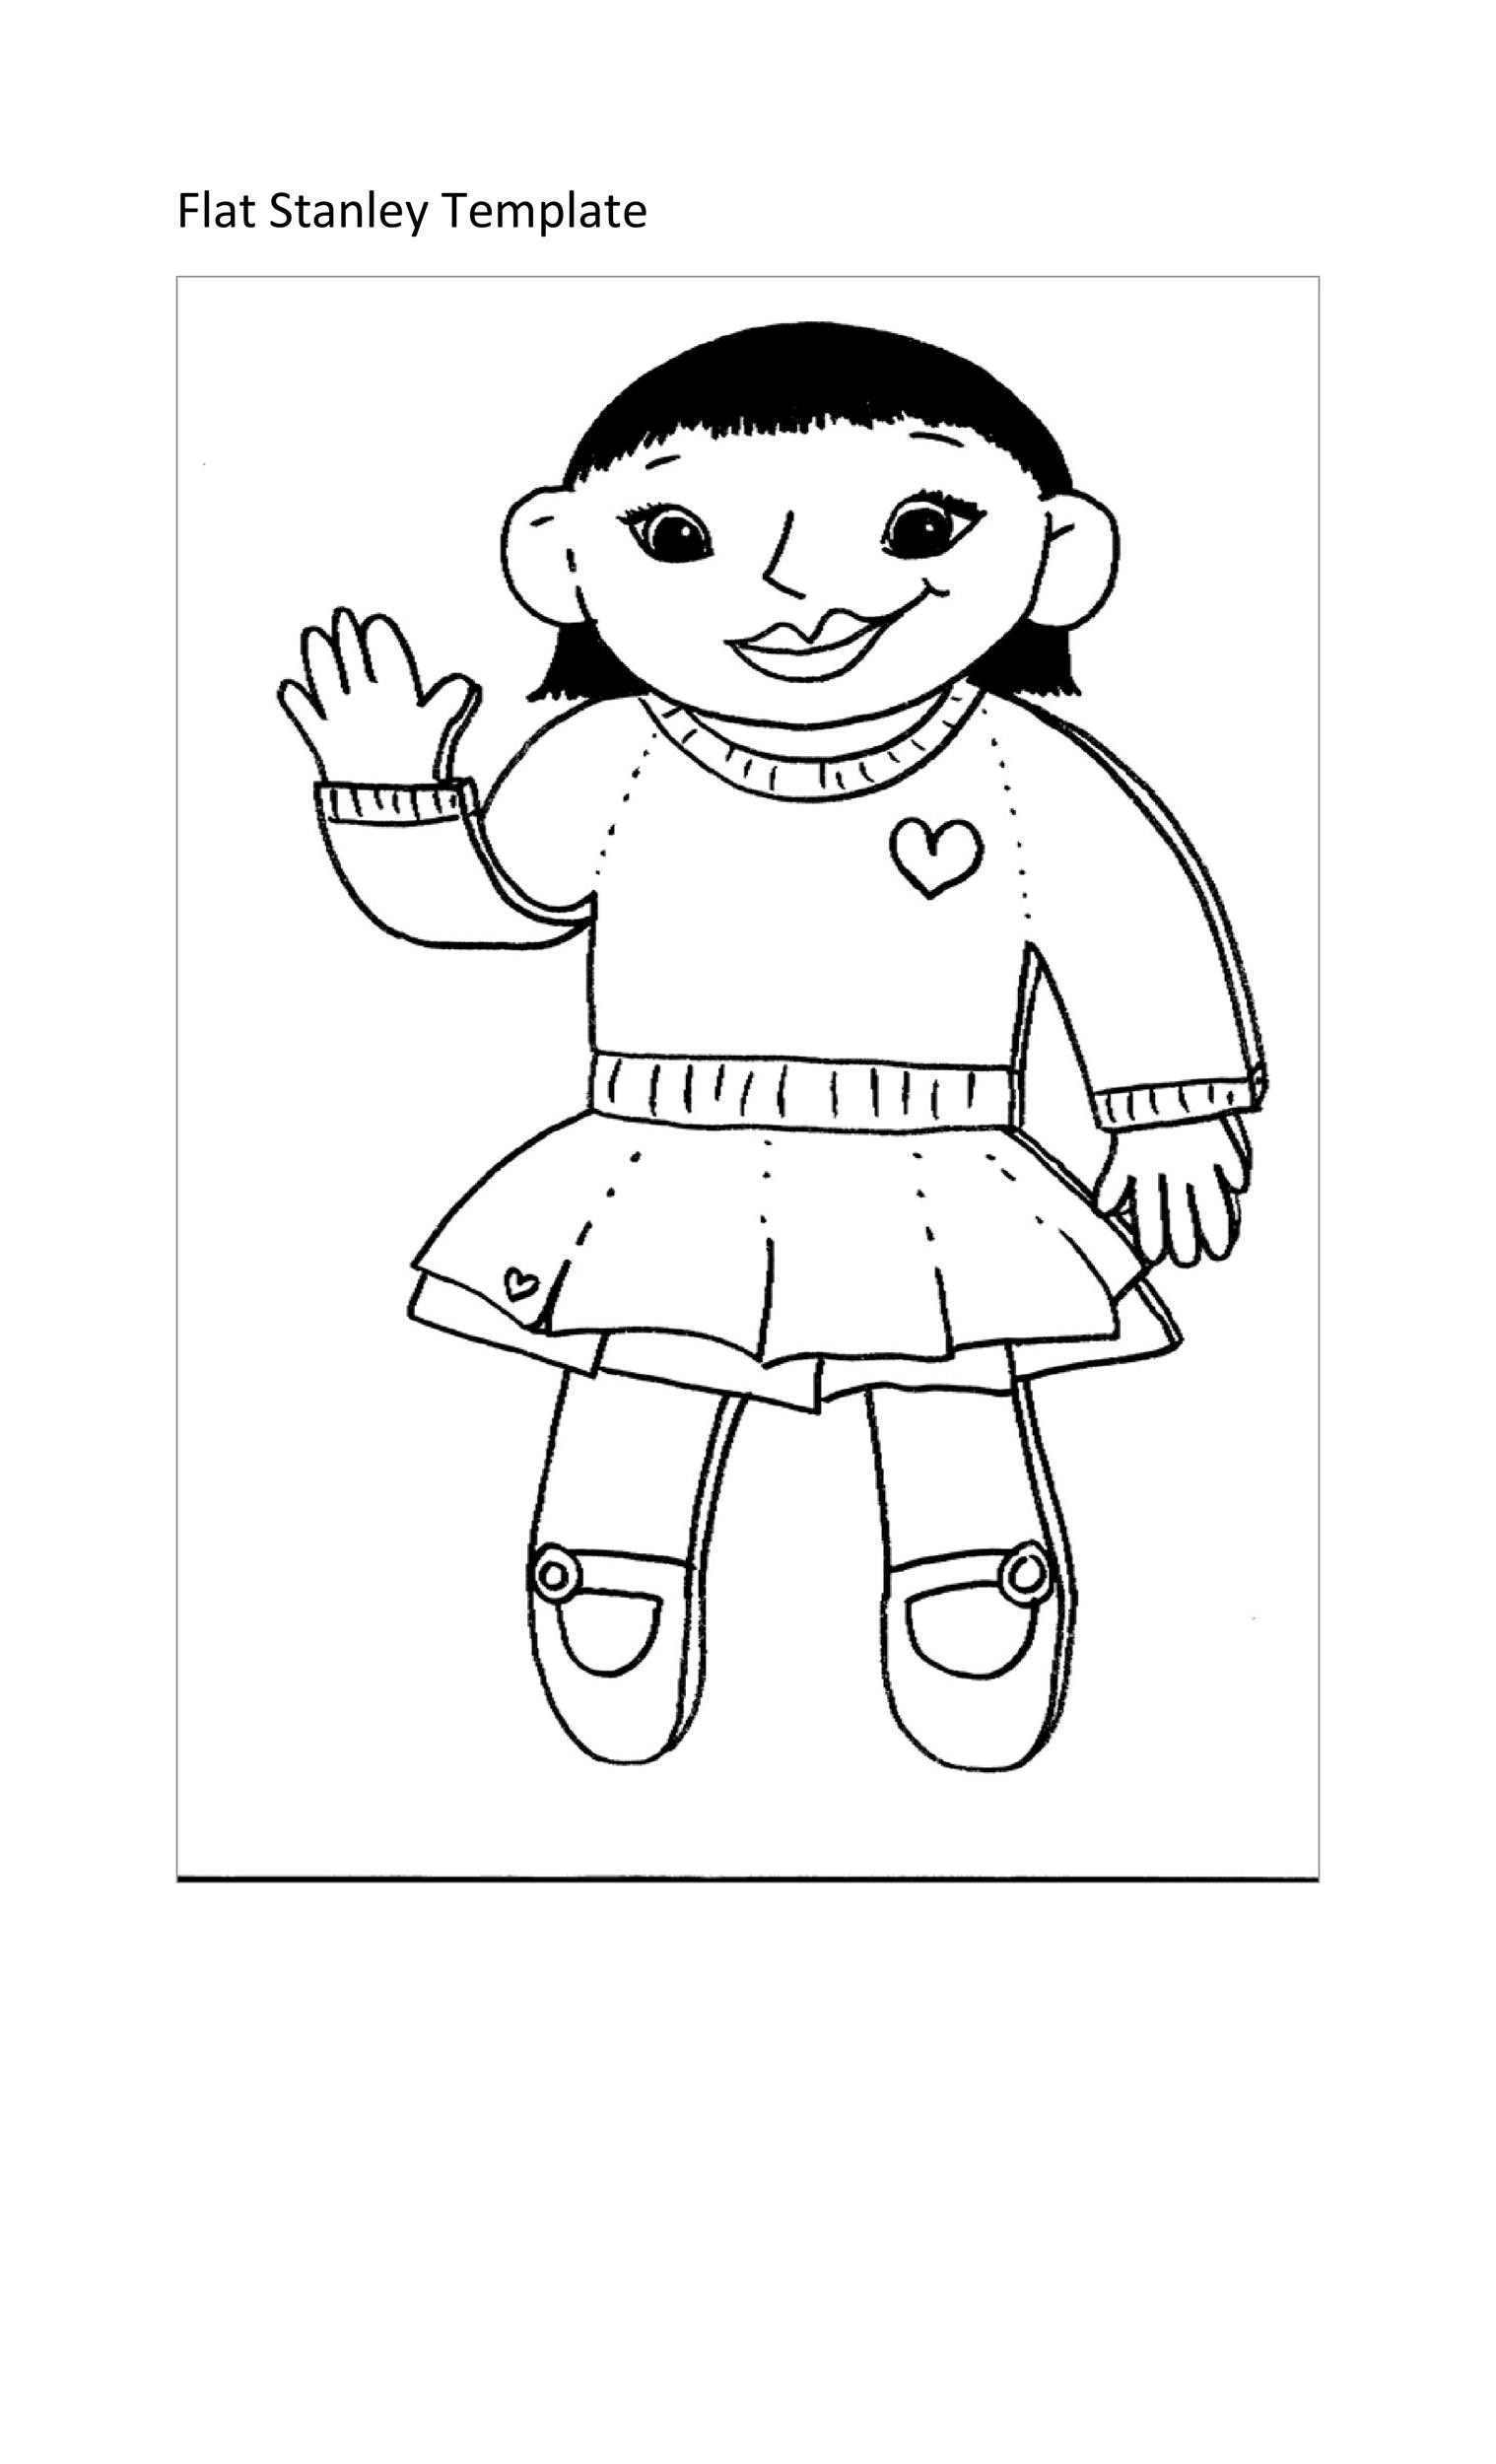 Free Flat Stanley Template 29